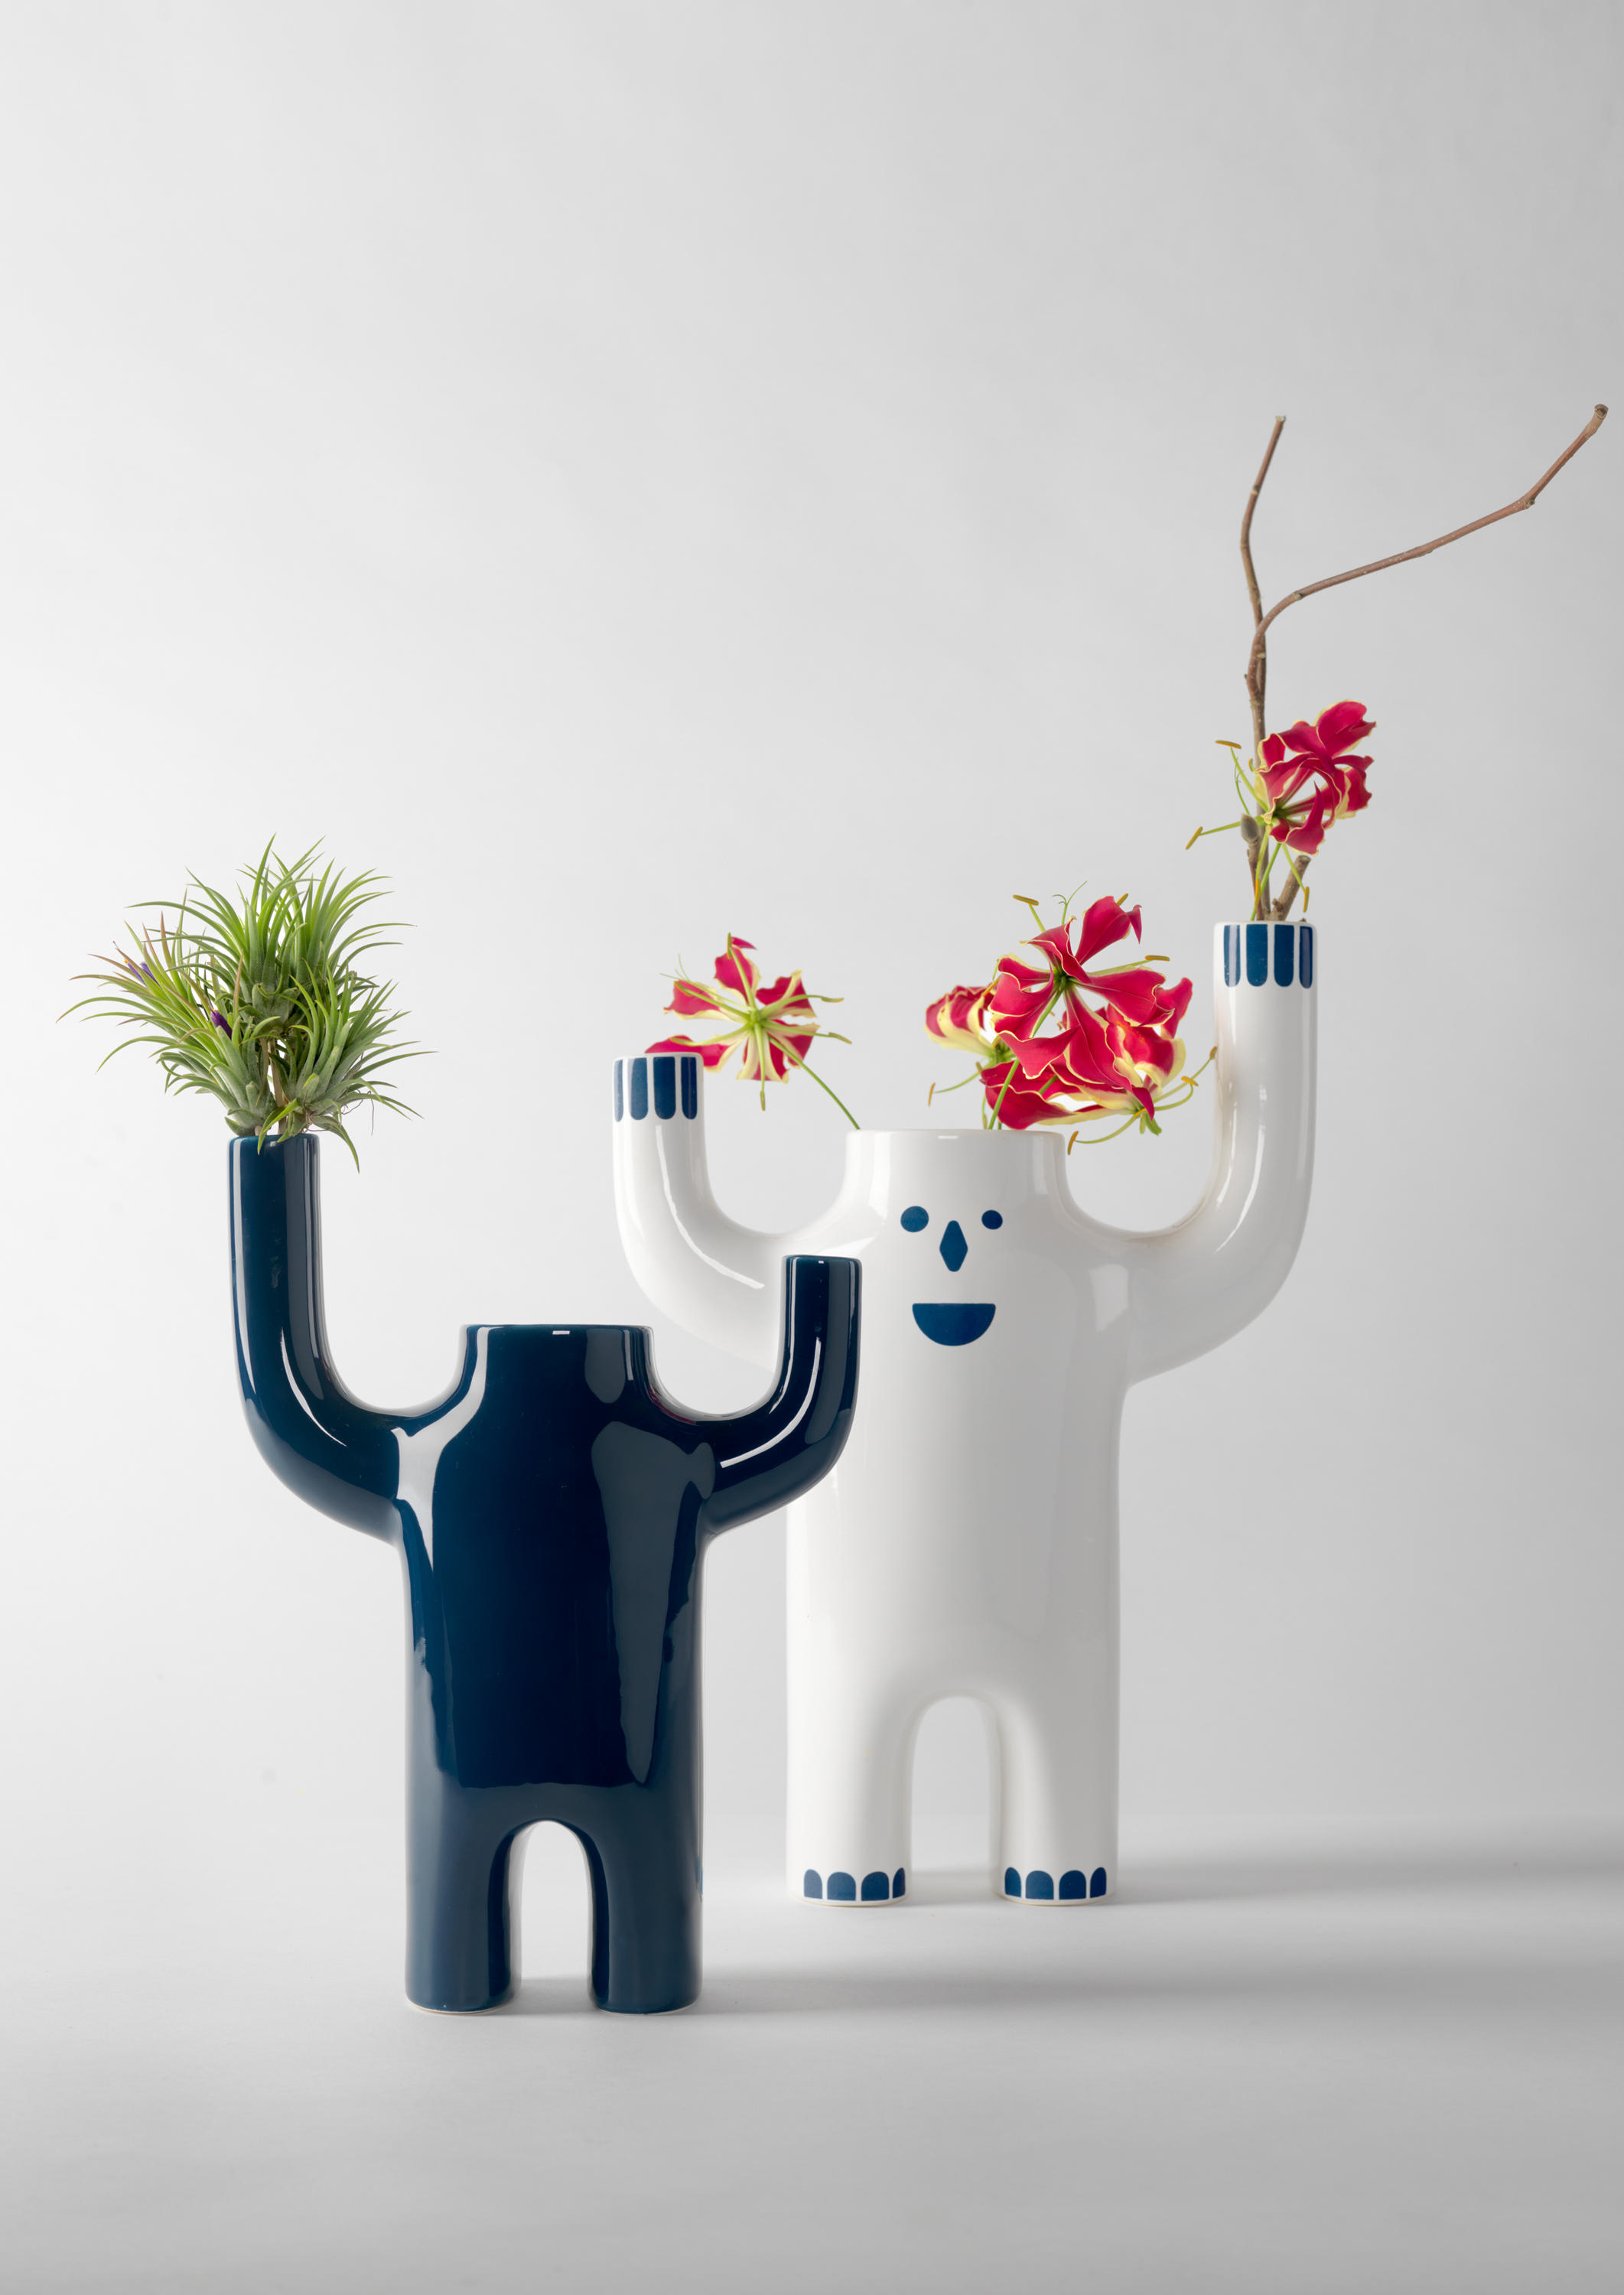 HAPPY SUSTO VASES - Vases from BD Barcelona | Architonic for Ettore Sottsass Shiva Vase  193tgx